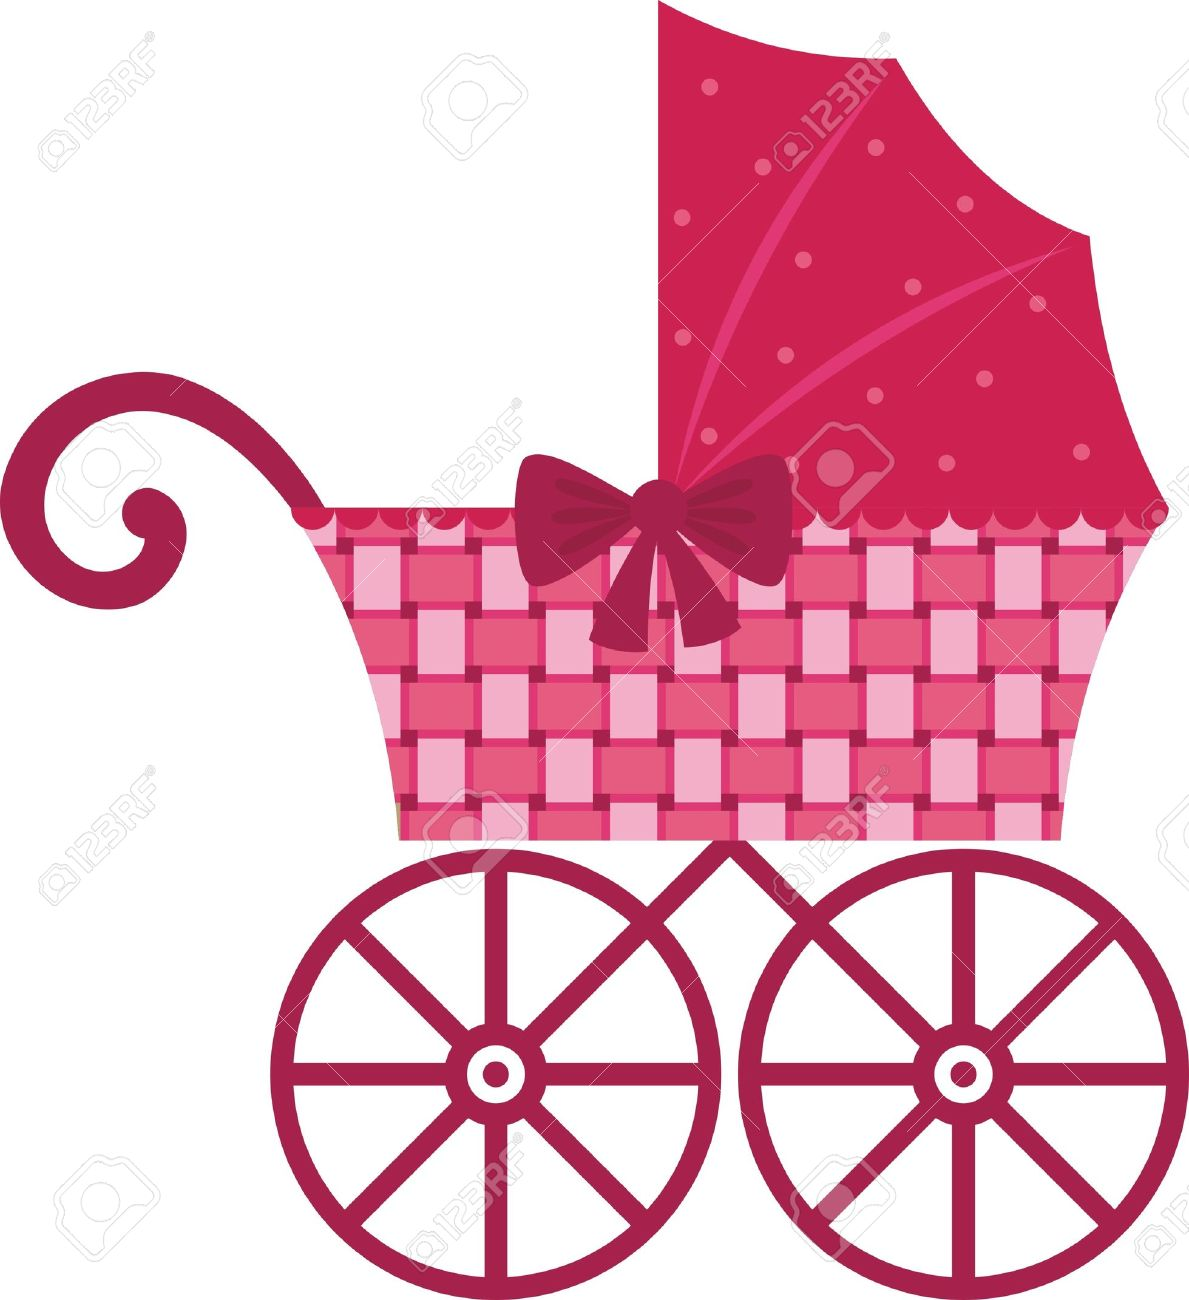 baby carriage silhouette clip art at getdrawings com free for rh getdrawings com vintage baby shower clipart vintage baby boy clipart